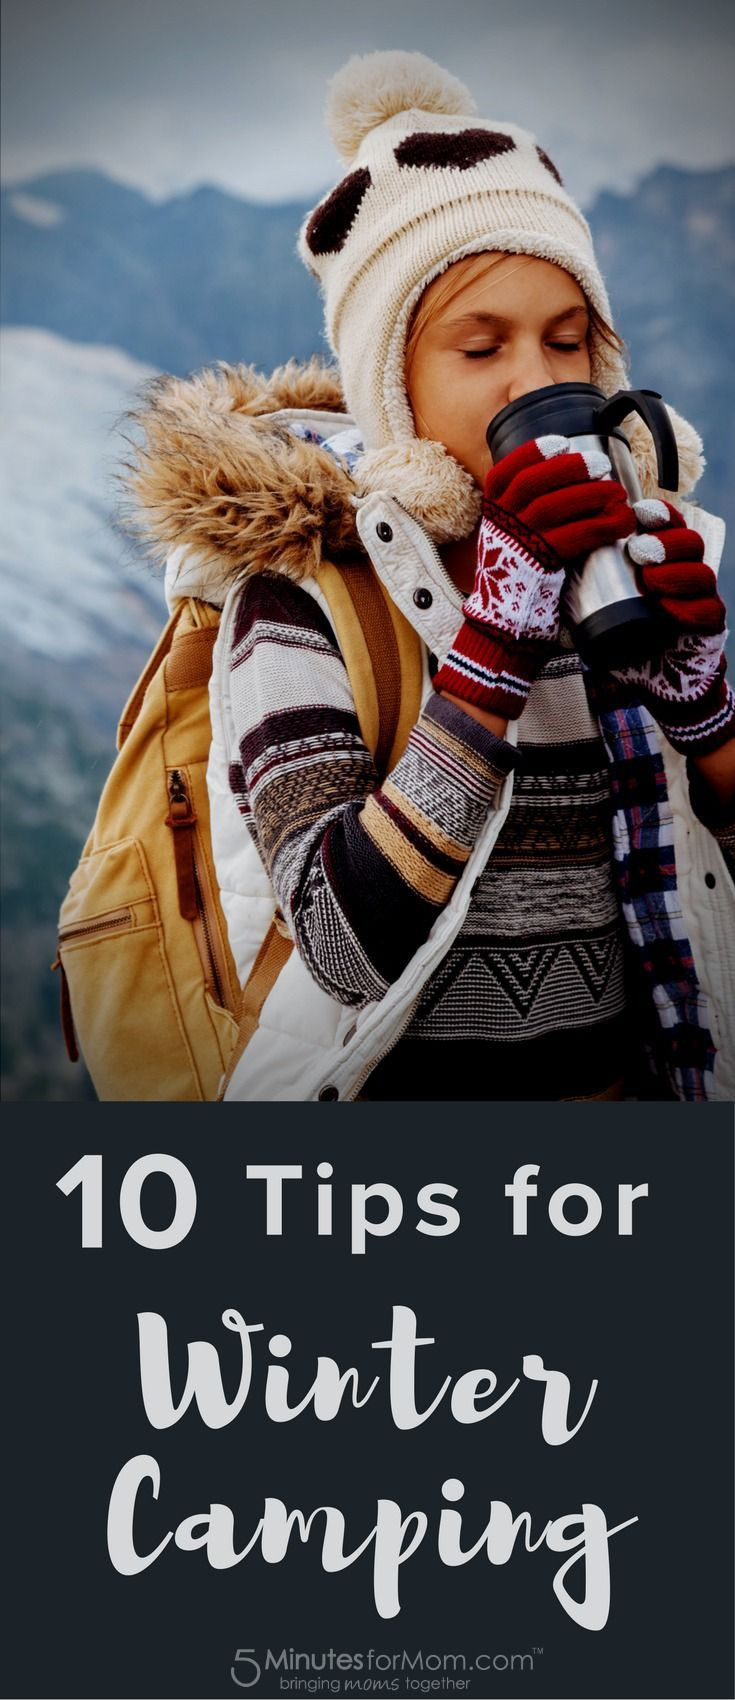 Tips for Winter Camping How to Have Fun Camping in Cooler